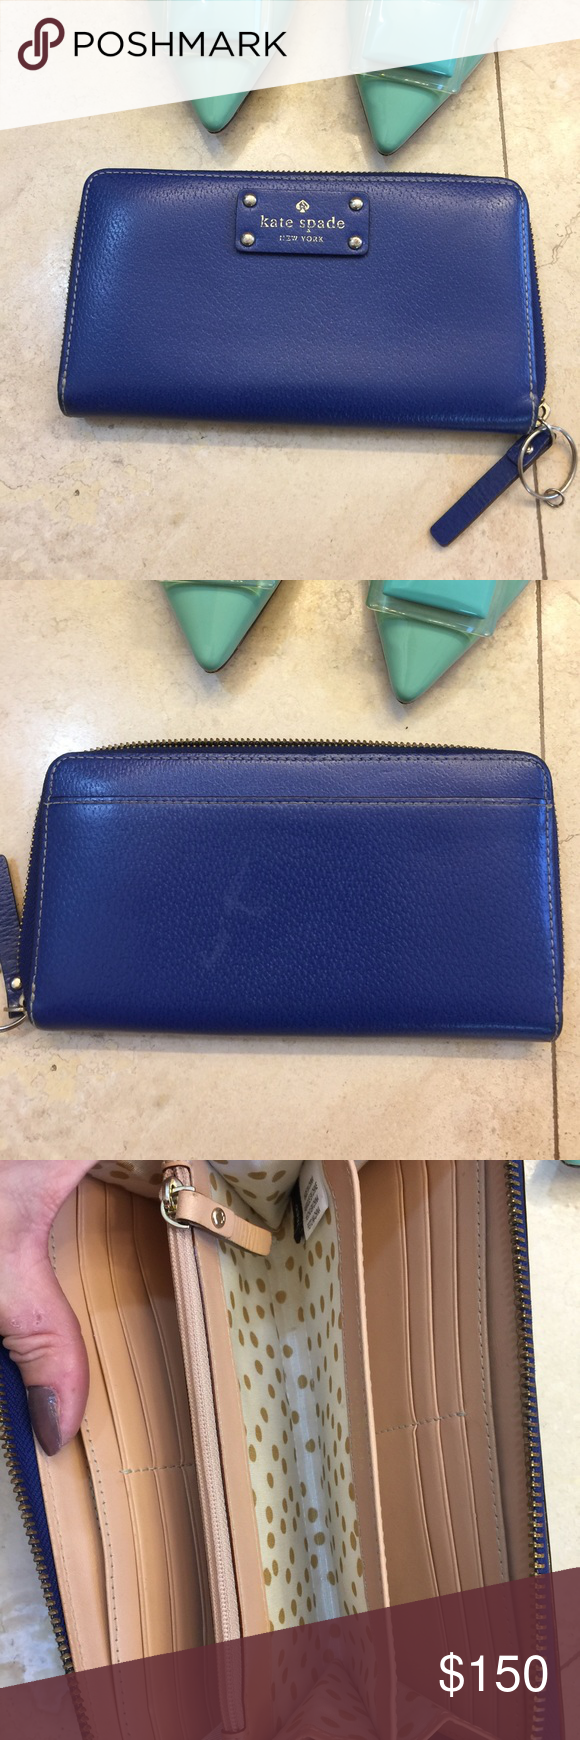 Kate Spade ♠️ electric blue Rainer Lane Lacy Kate Spade ♠️ electric blue full wallet !  There are 2 scratches on the back of wallet but not that bad or noticeable m kate spade Bags Wallets